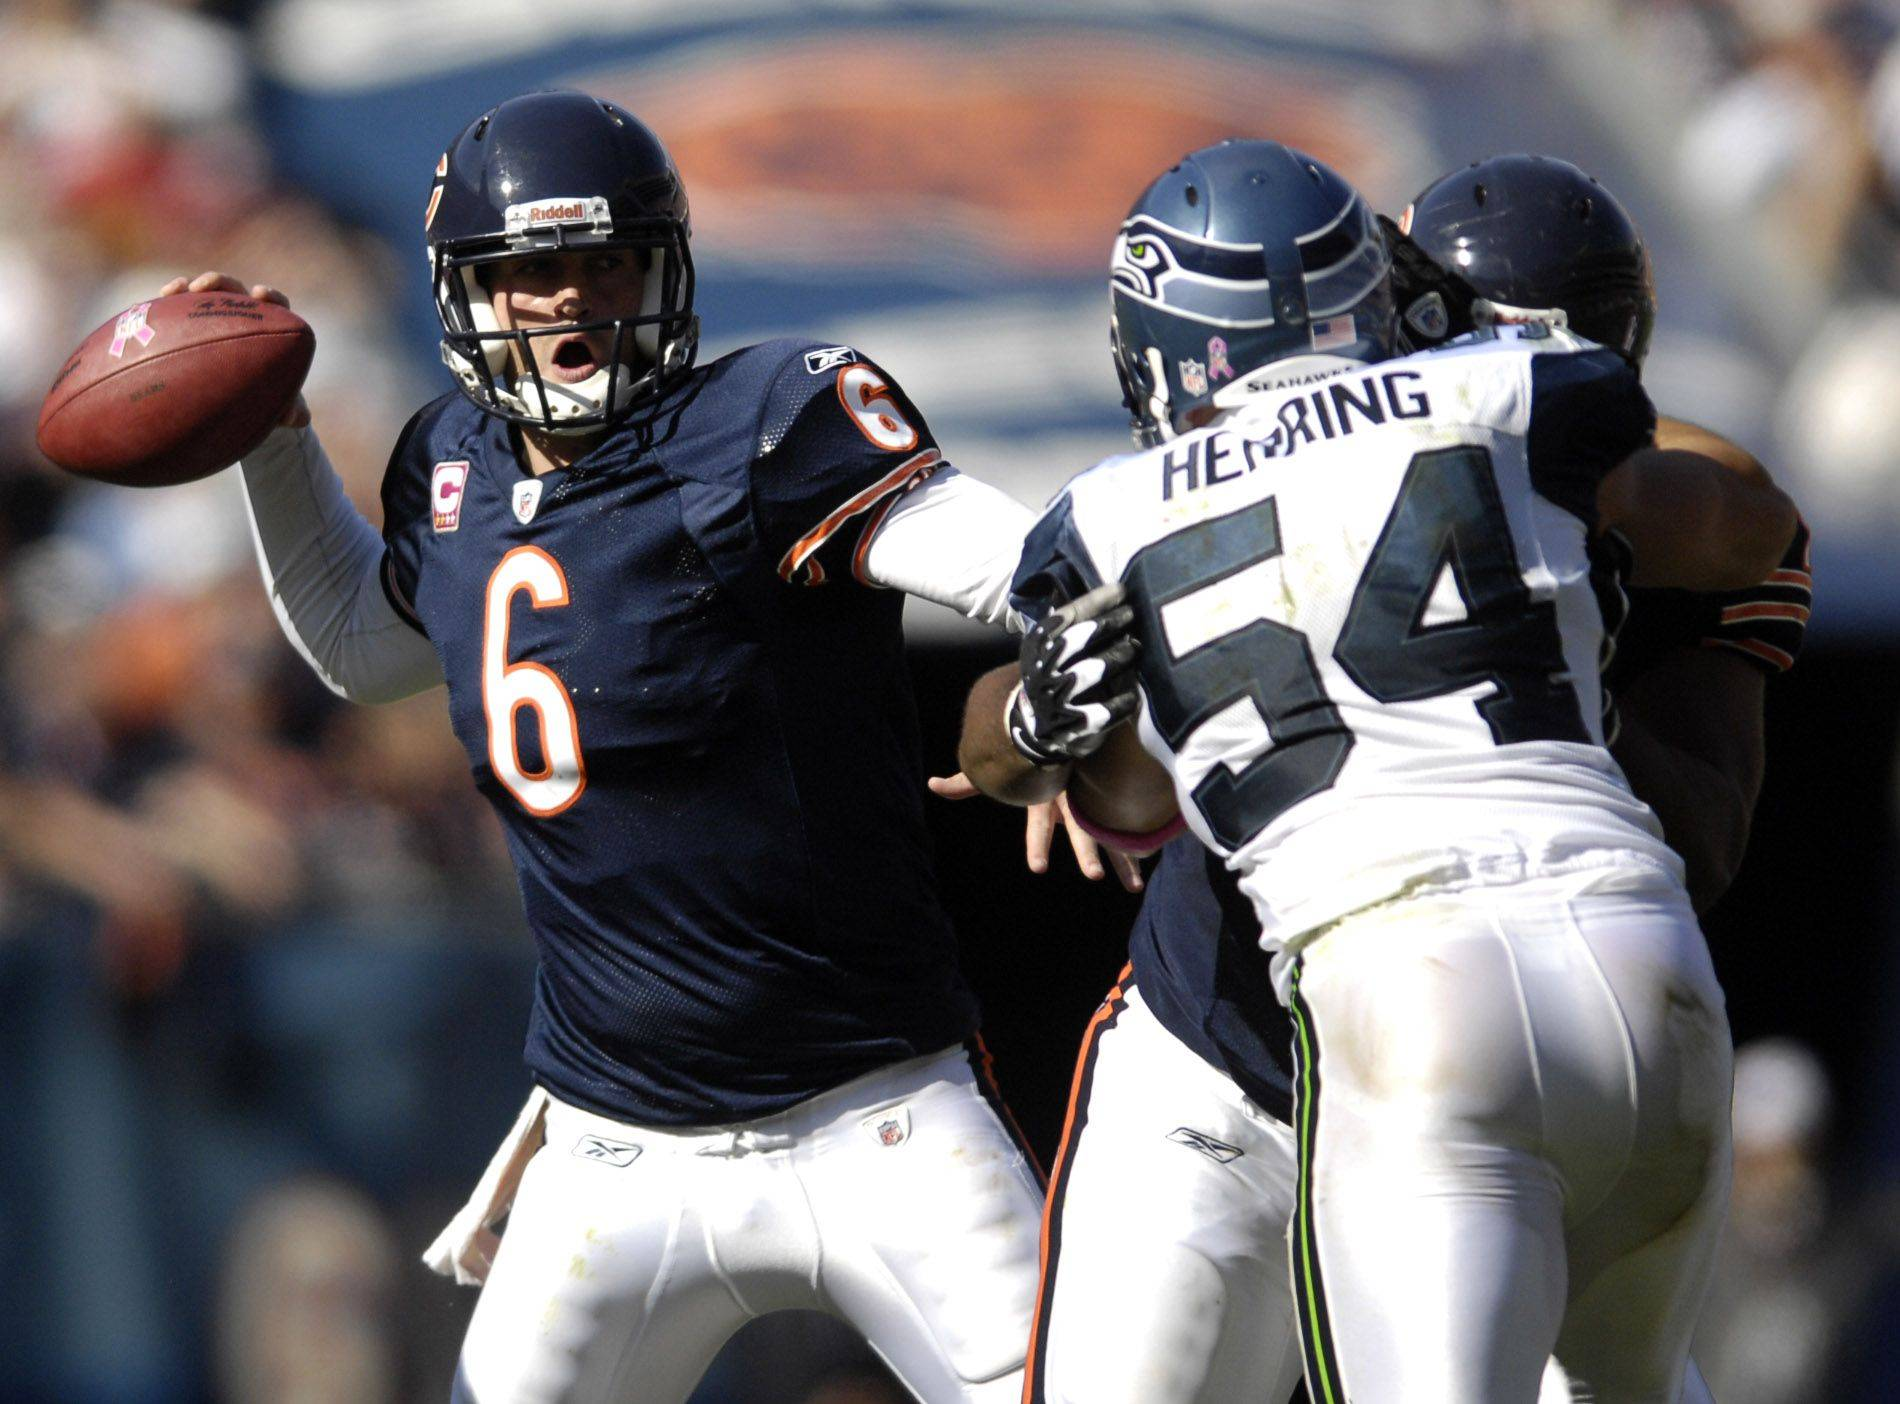 Chicago Bears quarterback Jay Cutler rears back to pass.